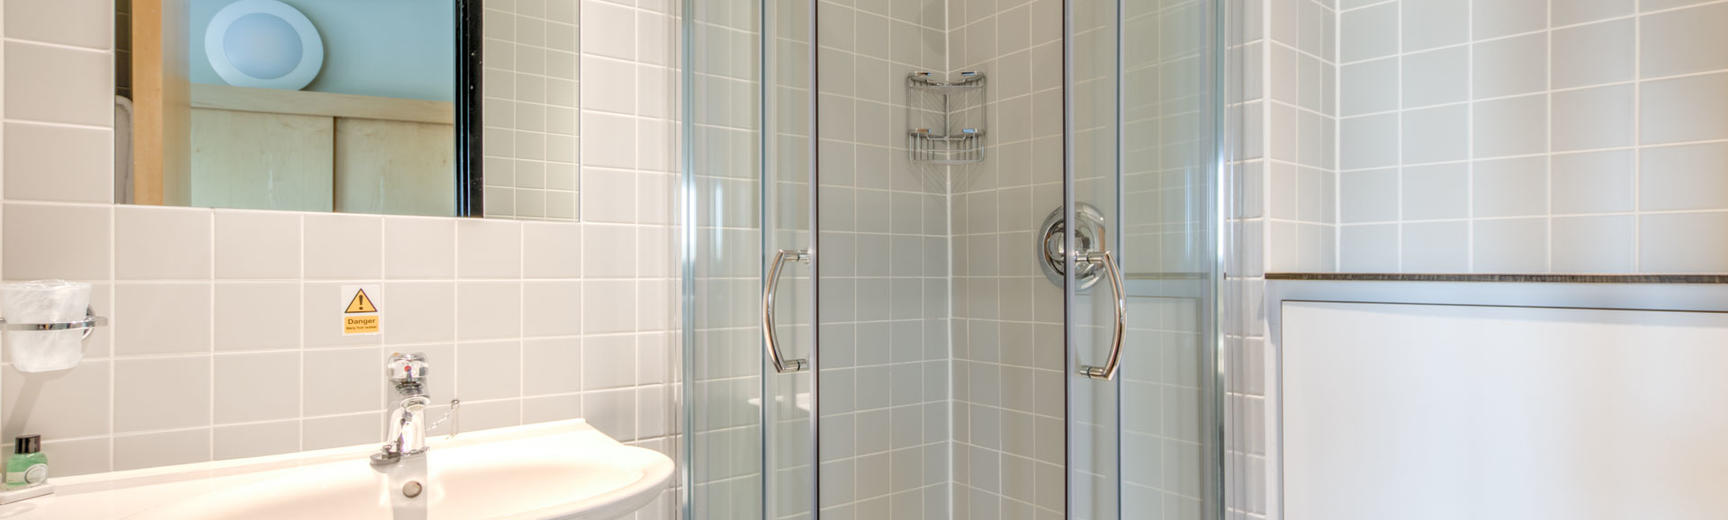 Photo of a bathroom with shower and washbasin